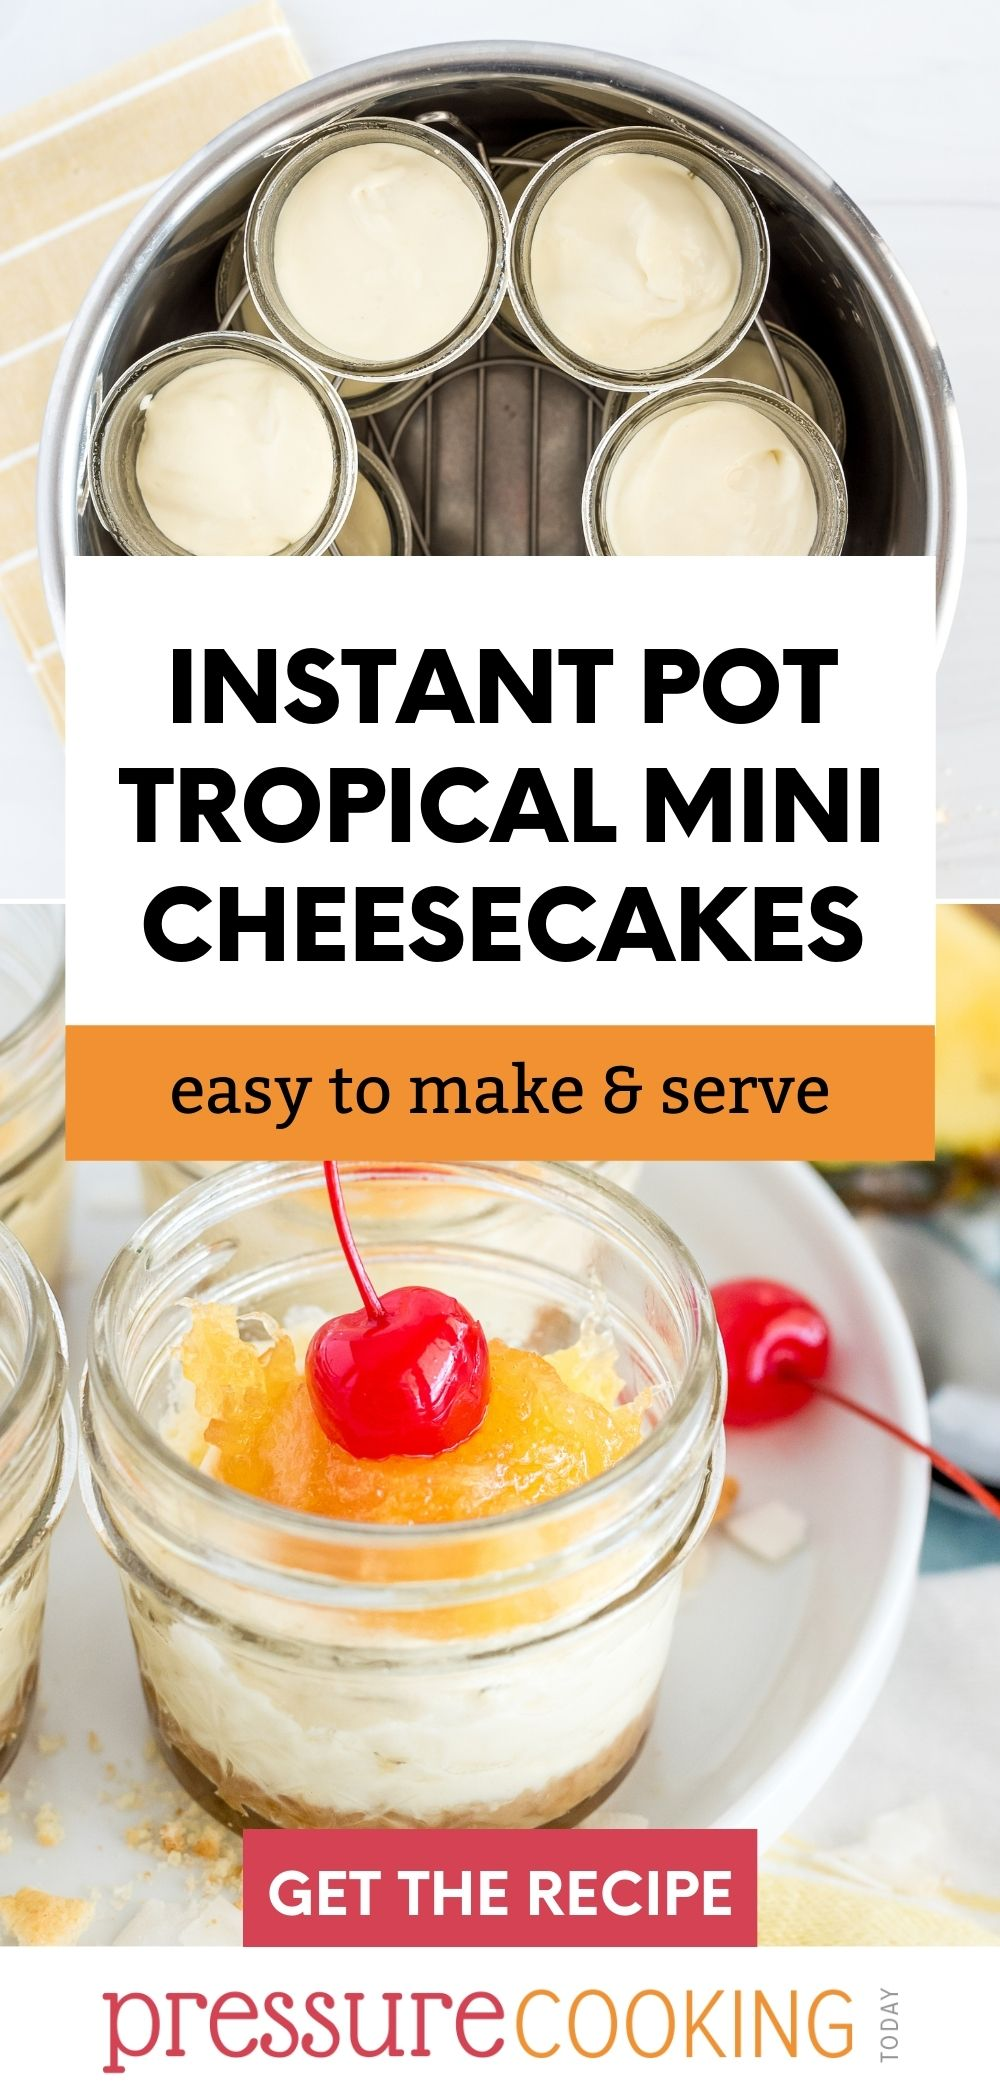 """Pinterest Image that reads """"Instant Pot Tropical mini Cheesecakes: Easy to Make & Serve"""" with a top image featuring mini cheesecakes in the Instant Pot and a dished up version in a mini mason jar on bottom via @PressureCook2da"""